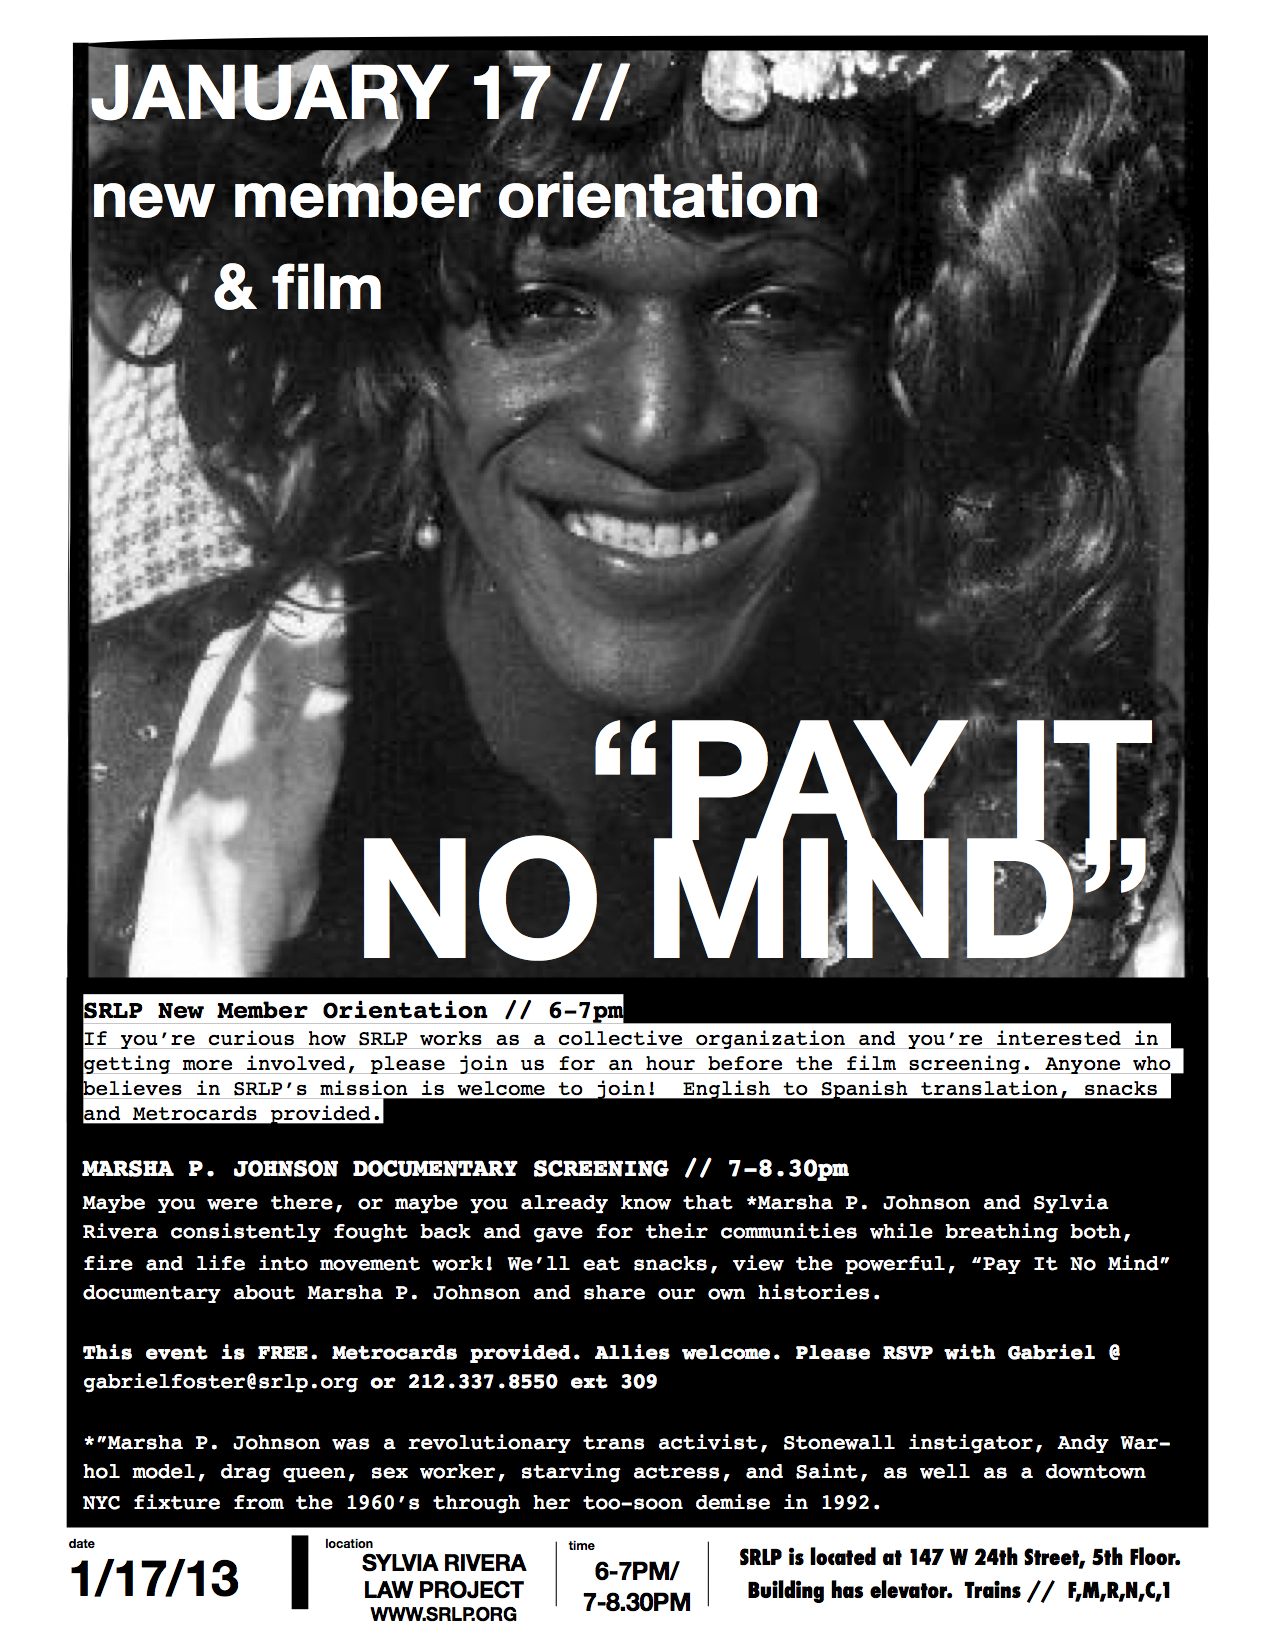 New Member Orientation & Film Flier